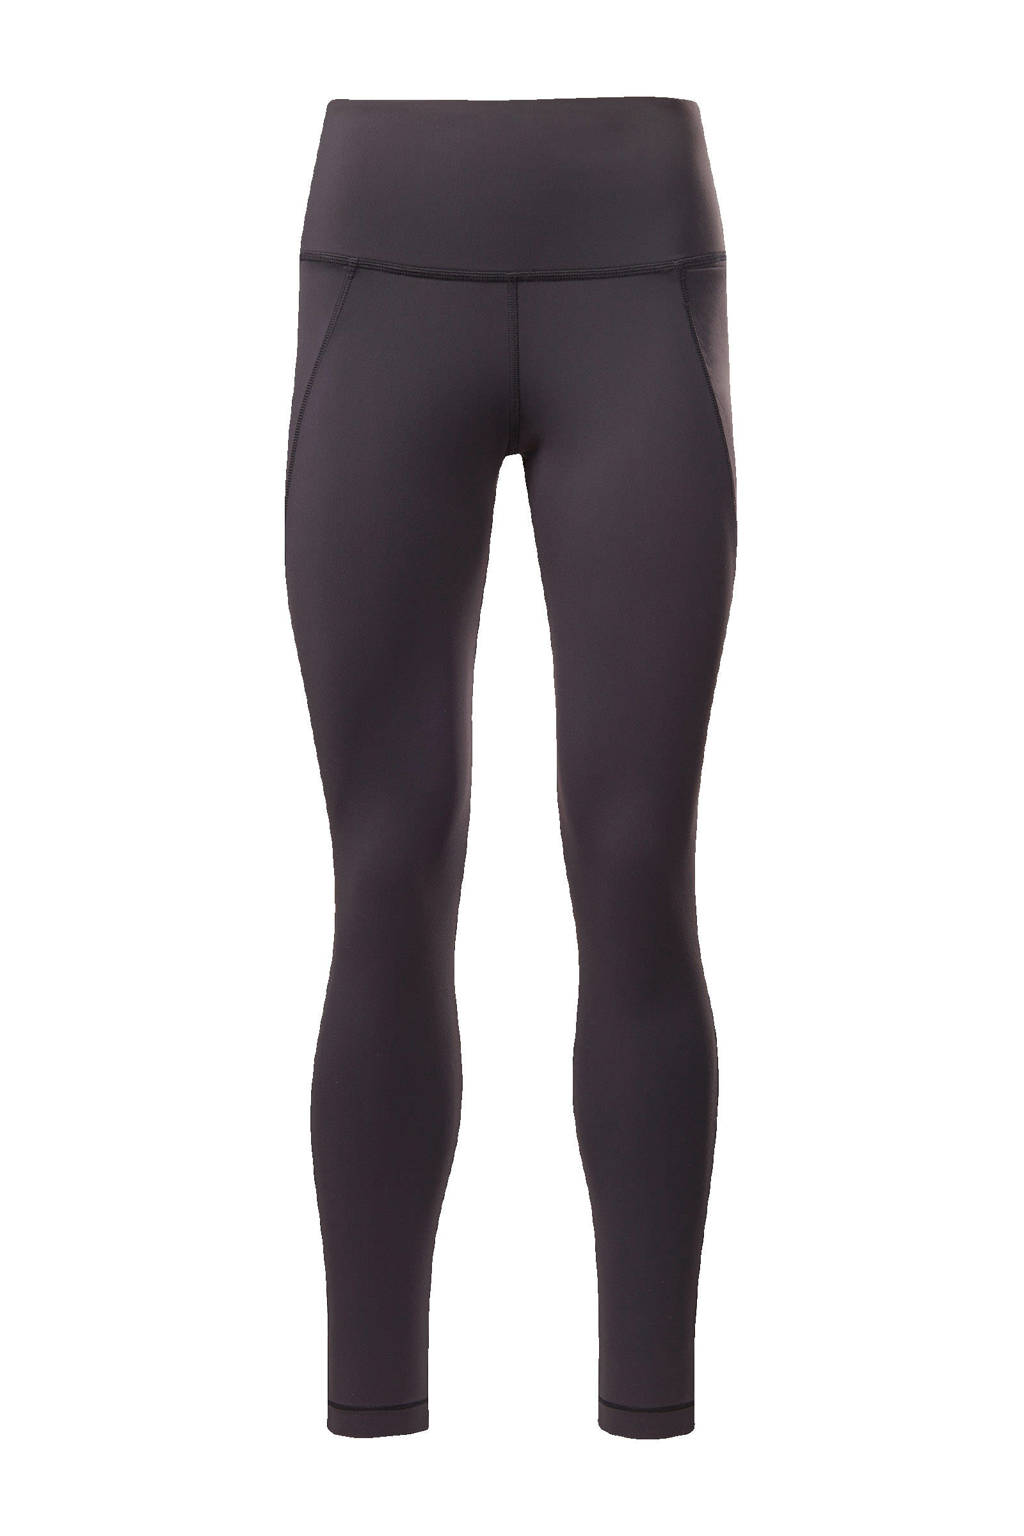 Reebok Training sportlegging zwart, Zwart